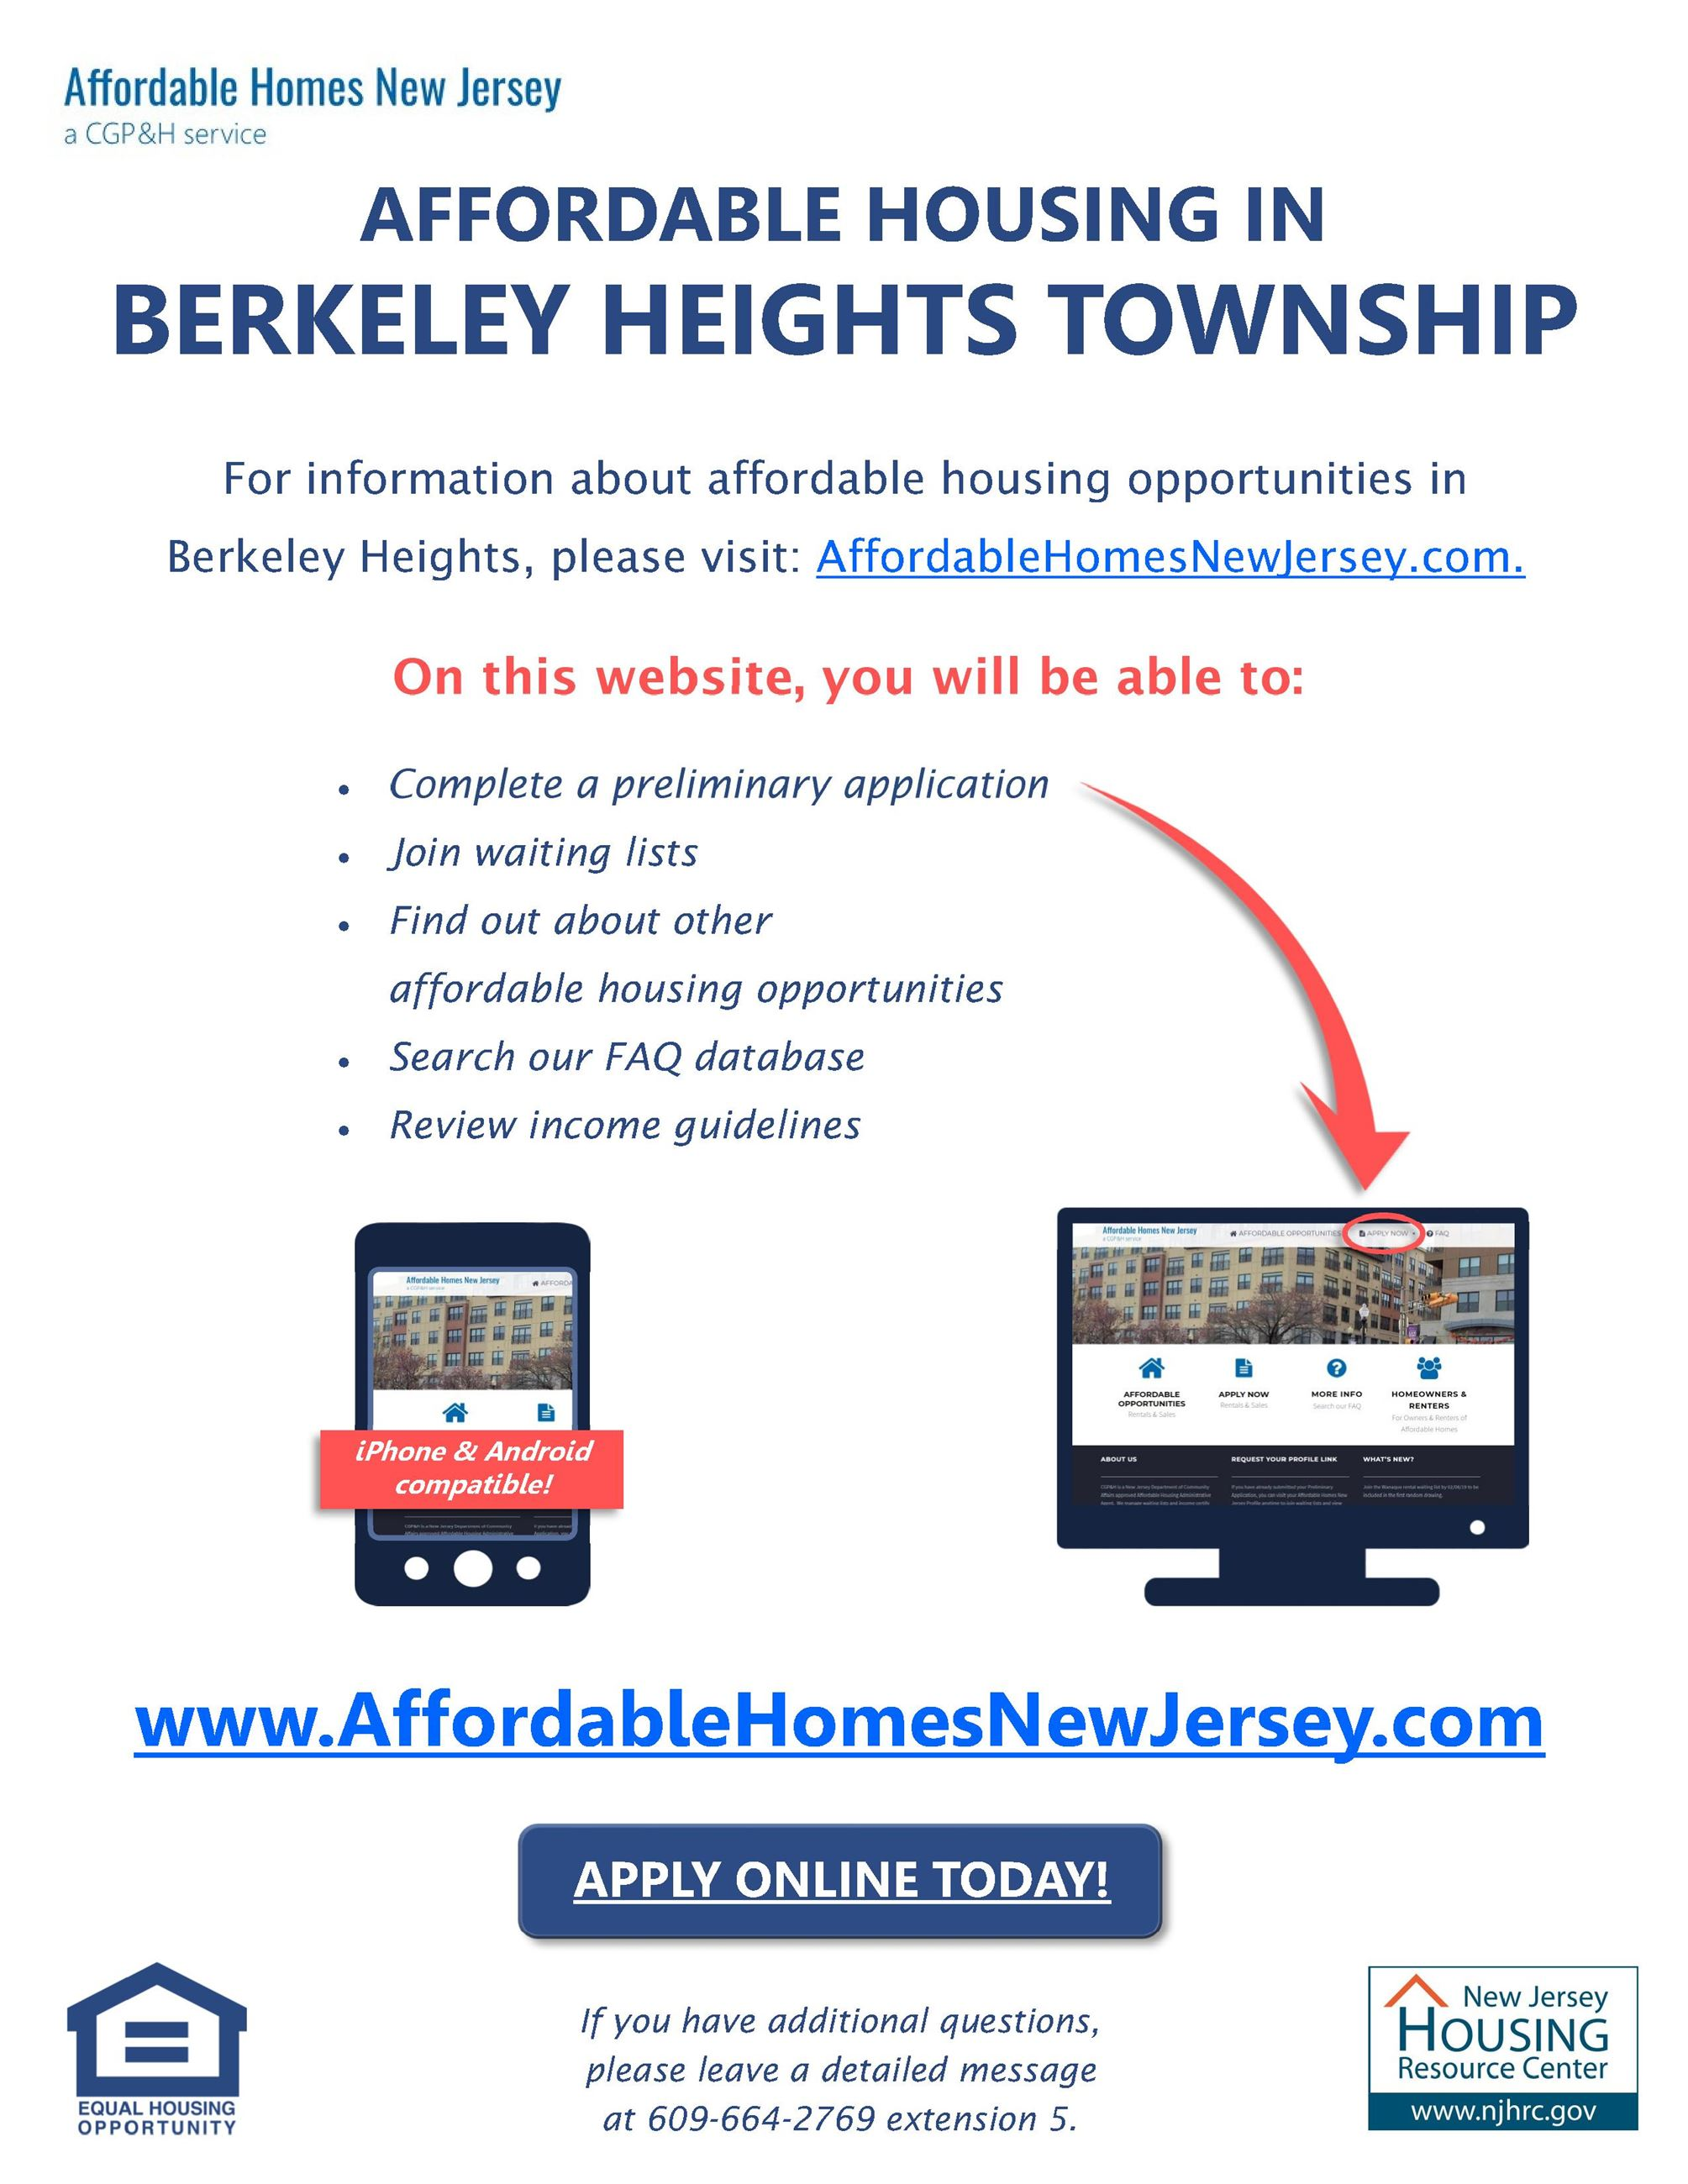 Berkeley Heights affordable housing website flyer_updated 070819 (002)